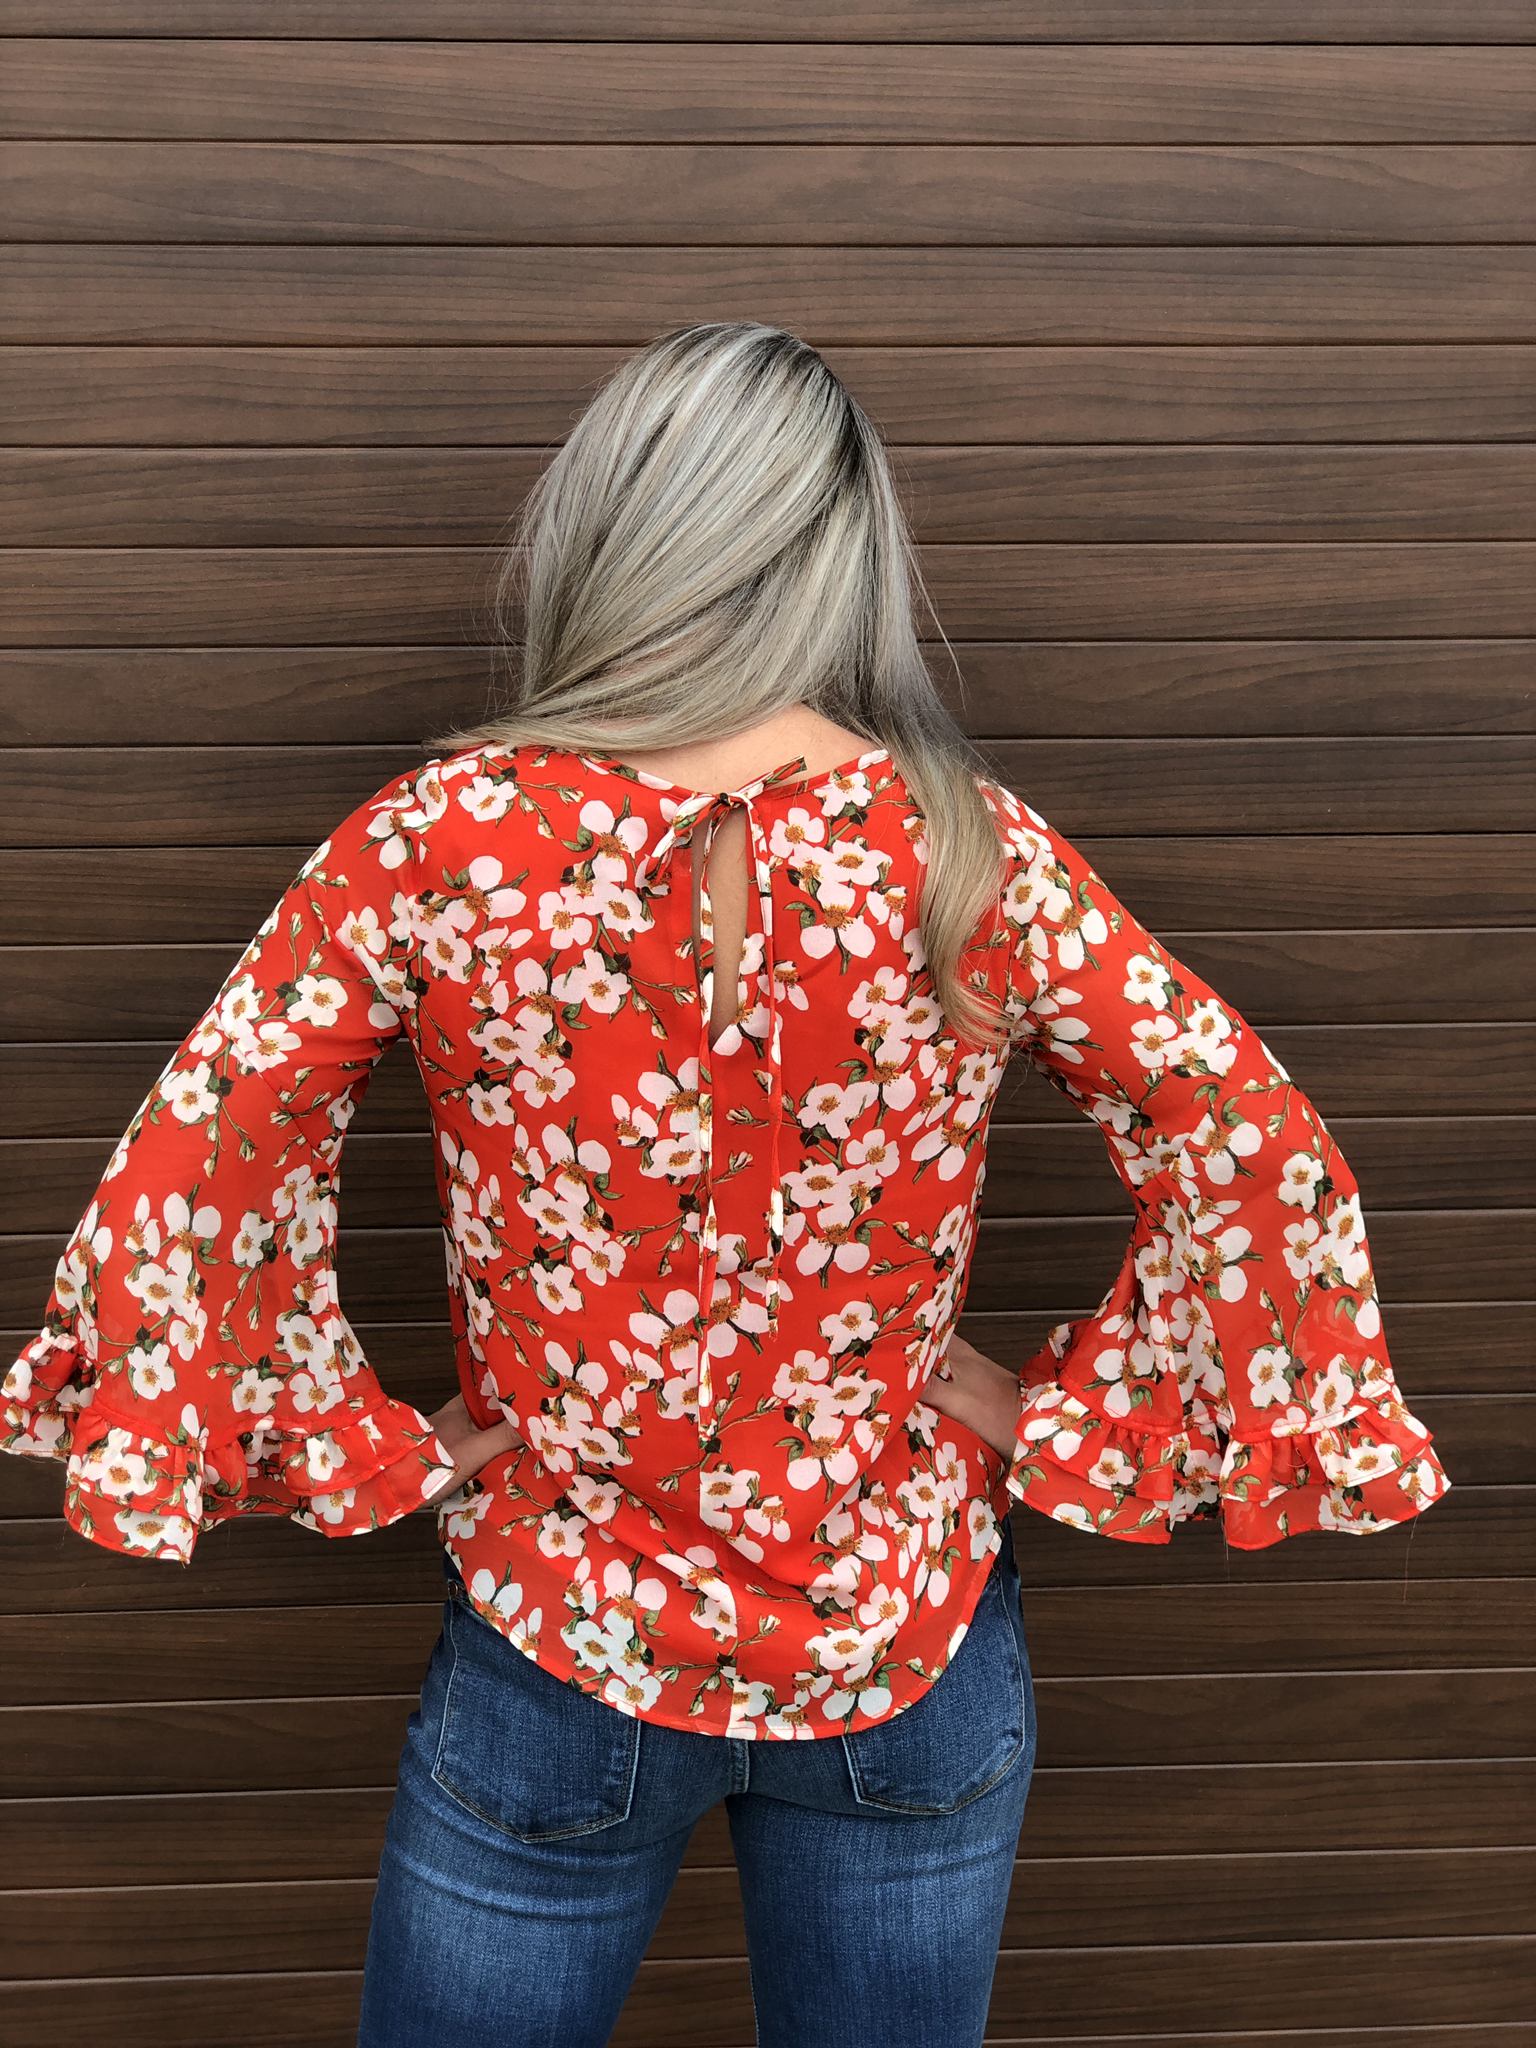 Floral orange blouse